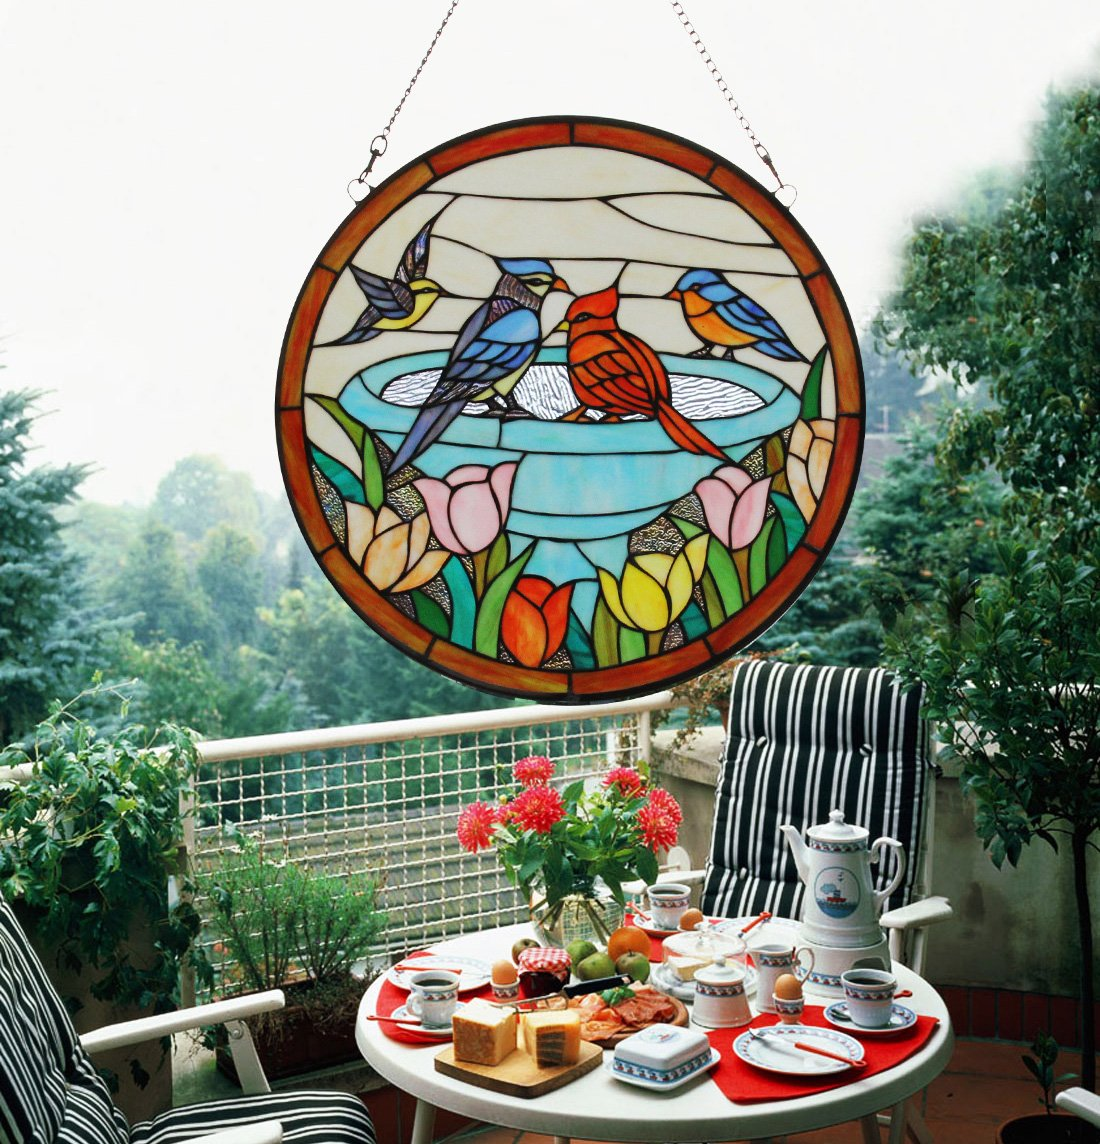 Makenier Vintage Tiffany Style Stained Church Art Glass Parrot and Tulip Round Window Panel Wall Hanging 0